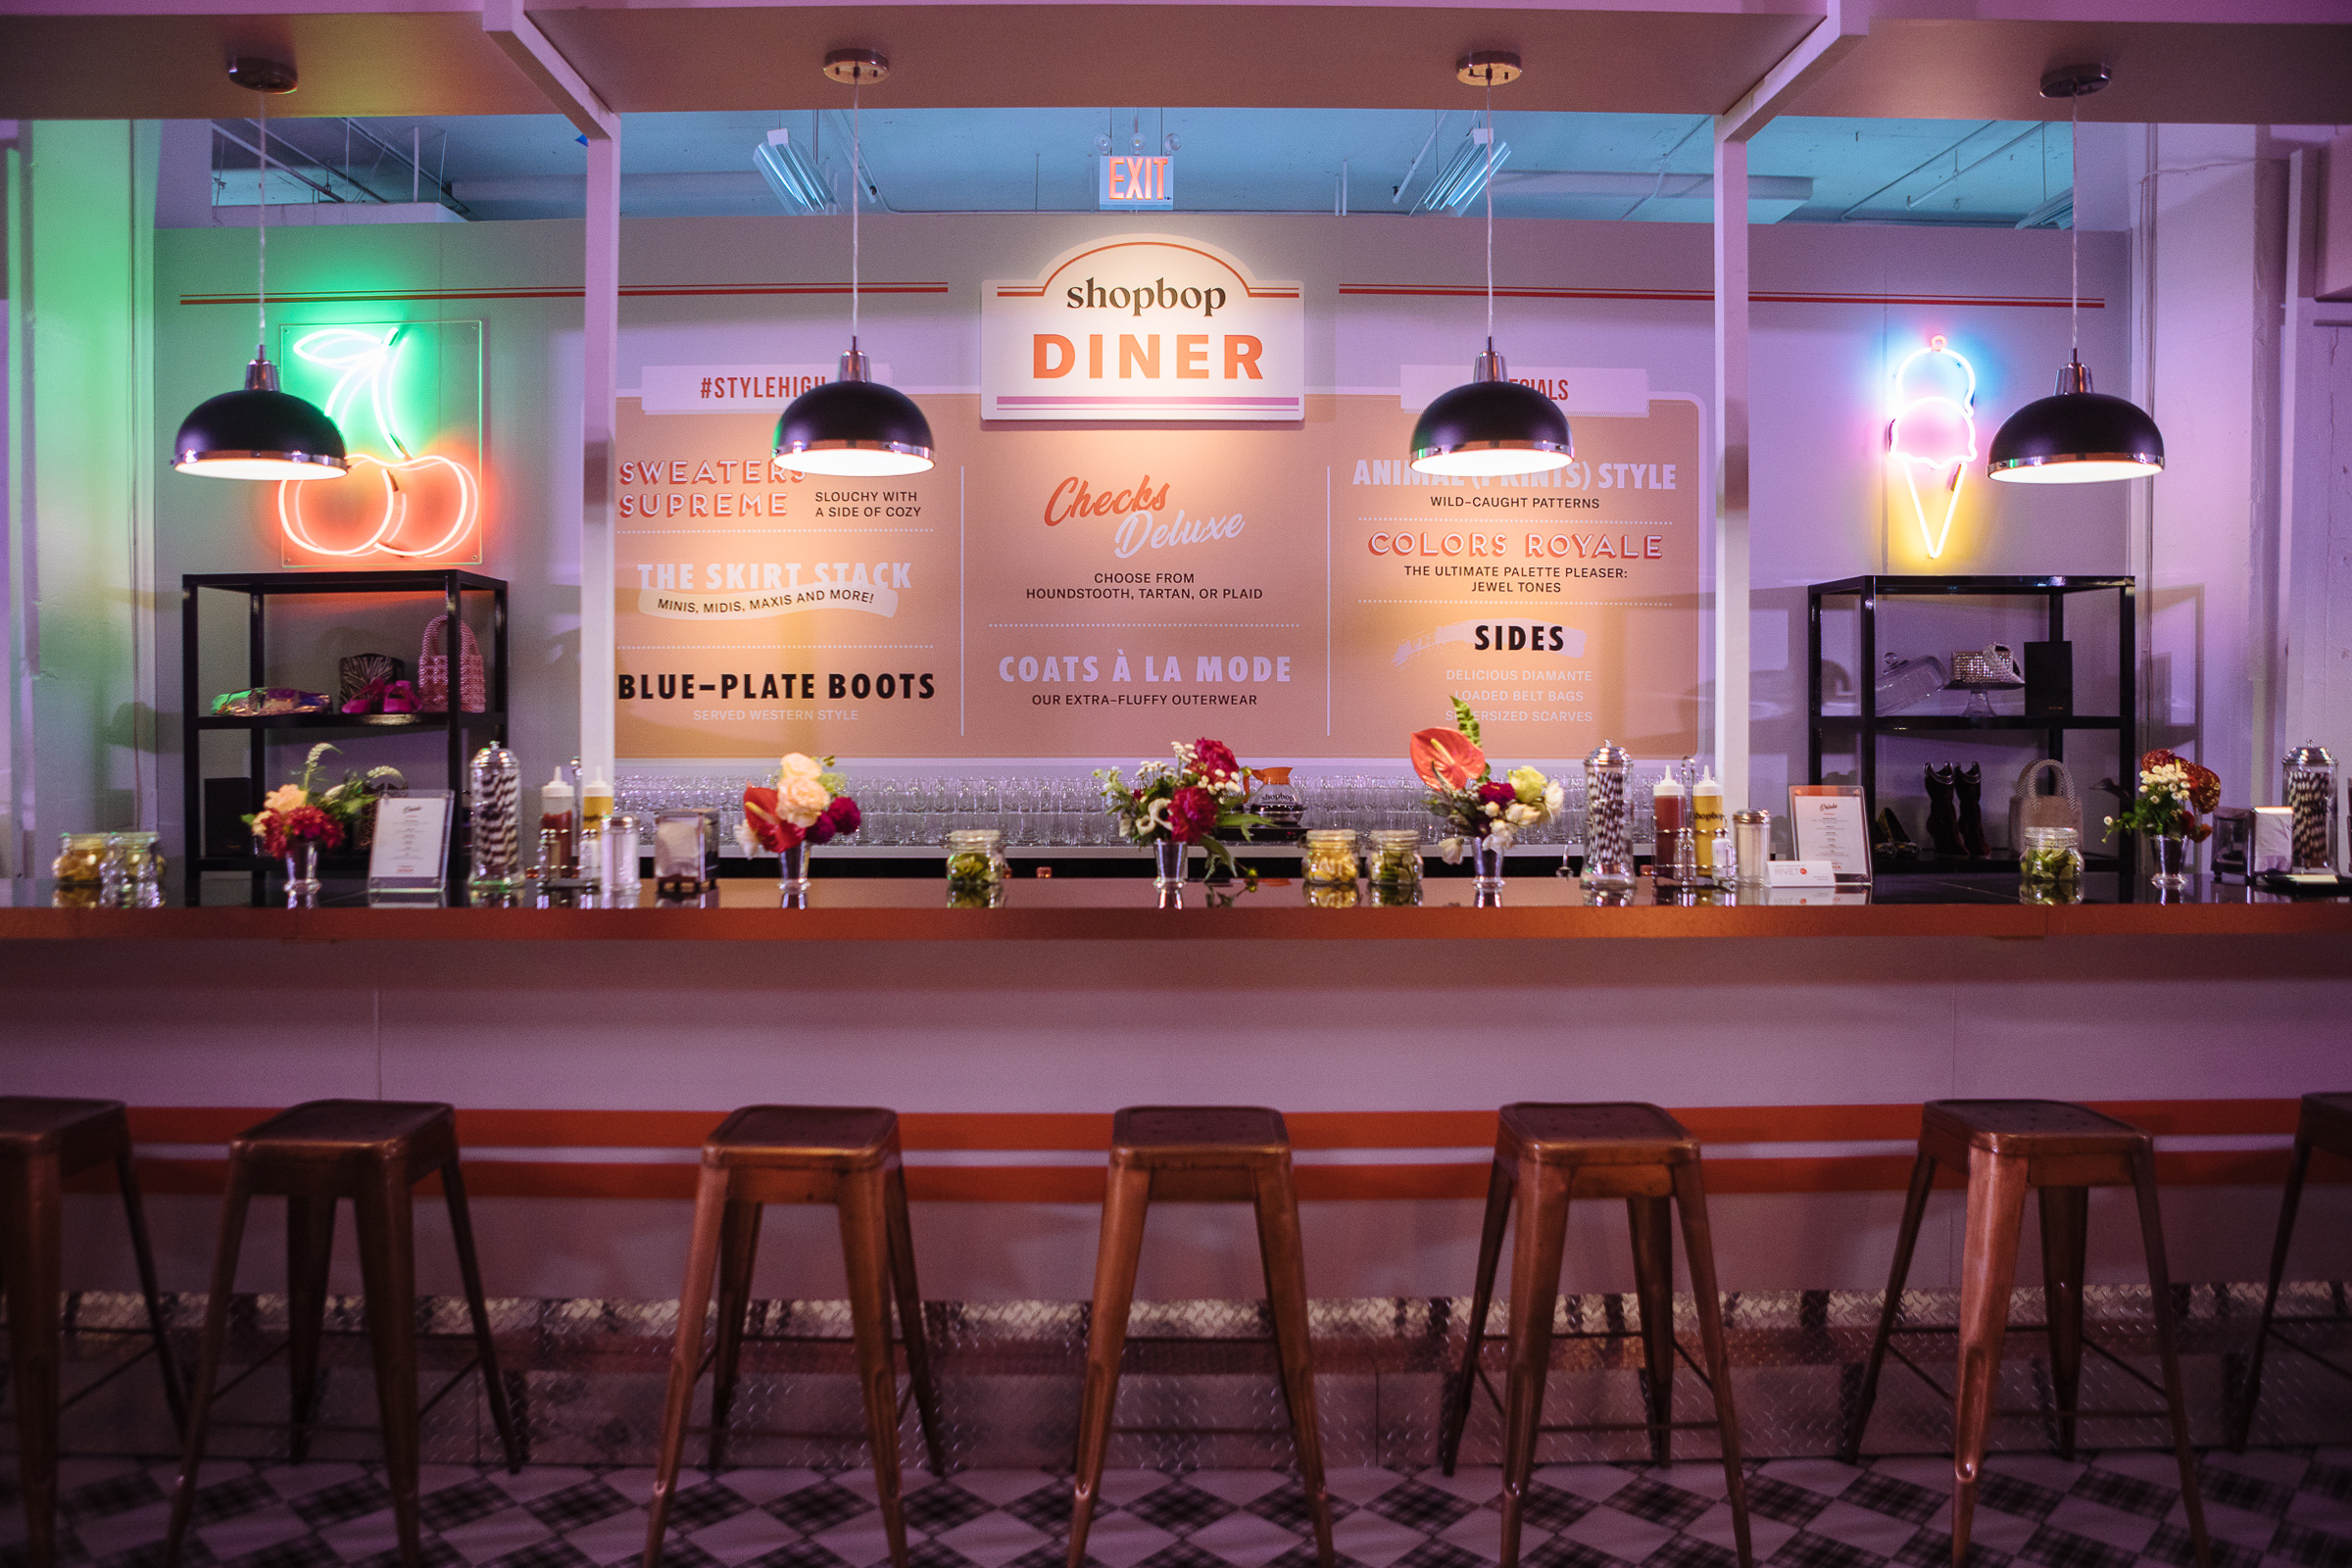 Shopbop Diner Activation